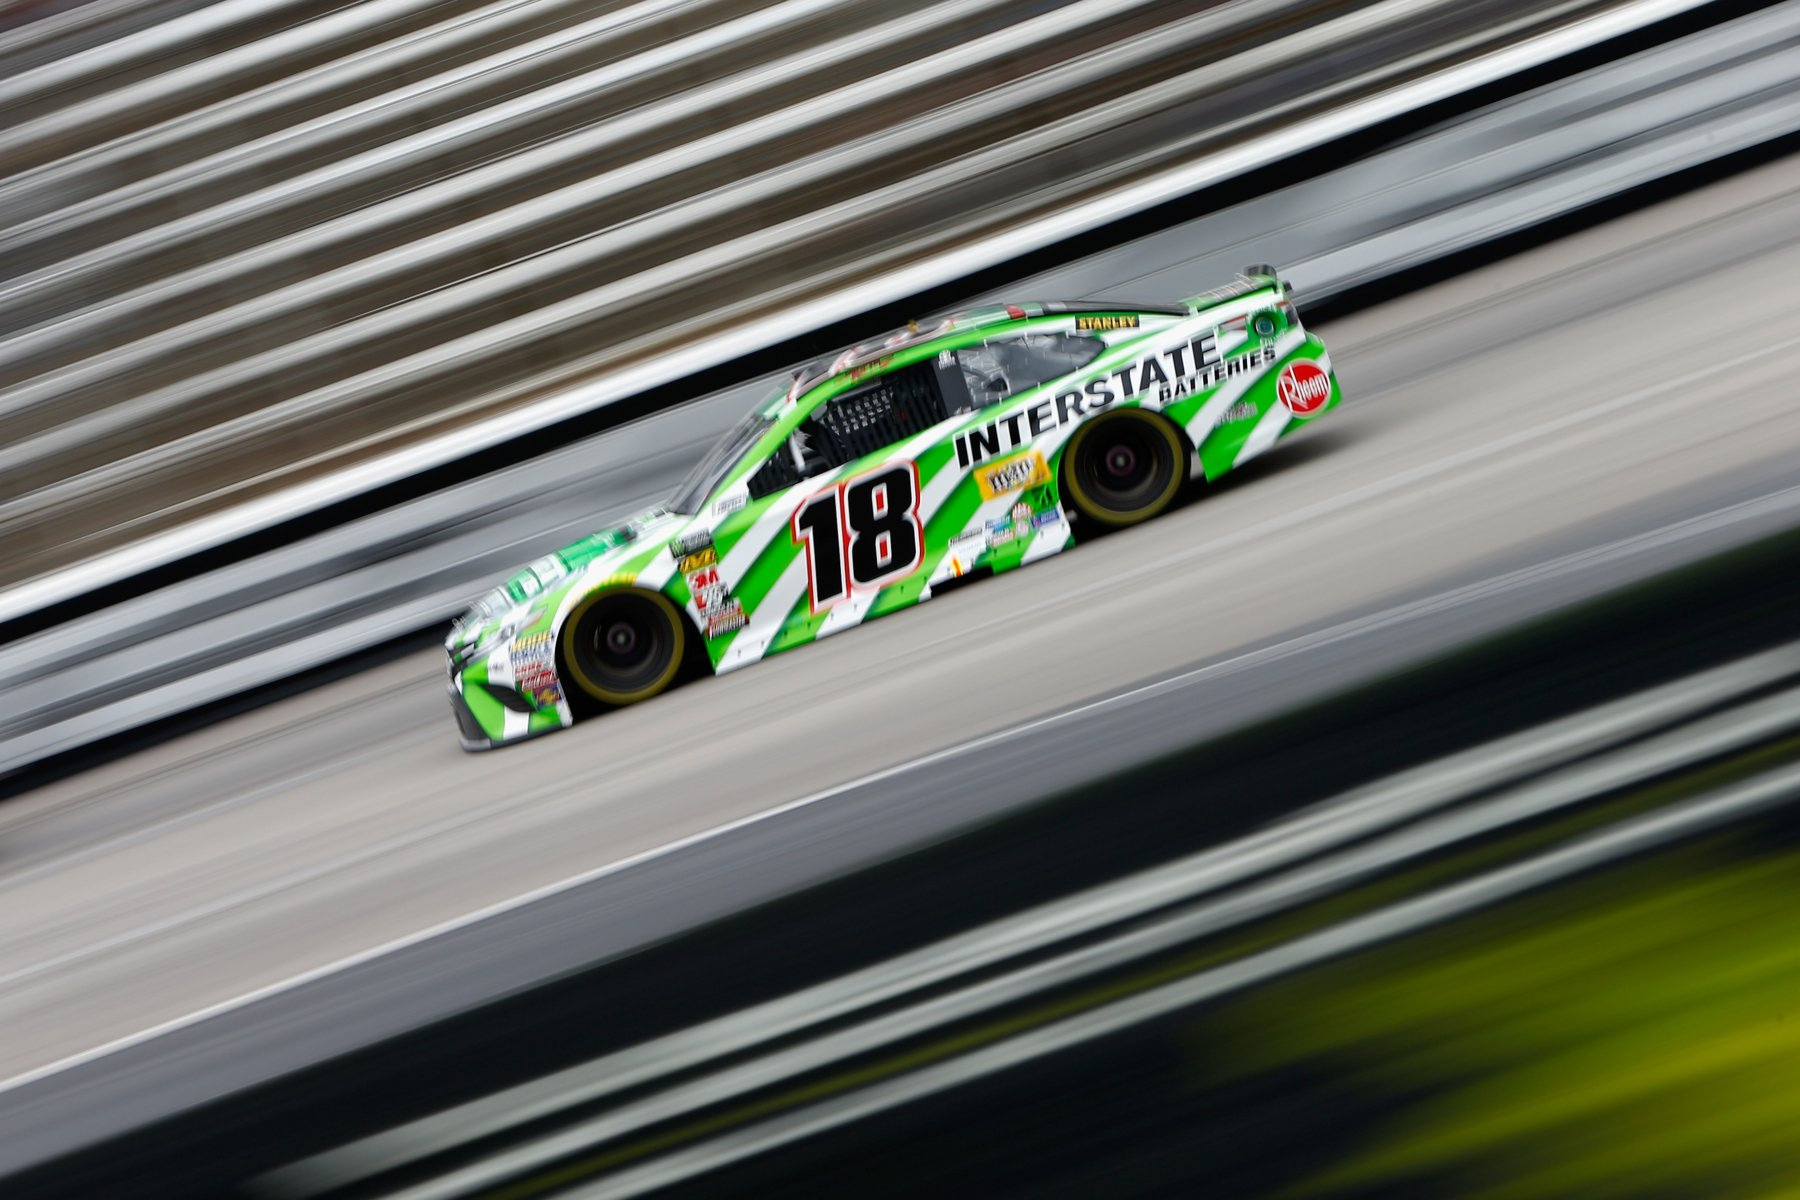 Kyle Busch at Texas Motor Speedway in the NASCAR Cup Series race